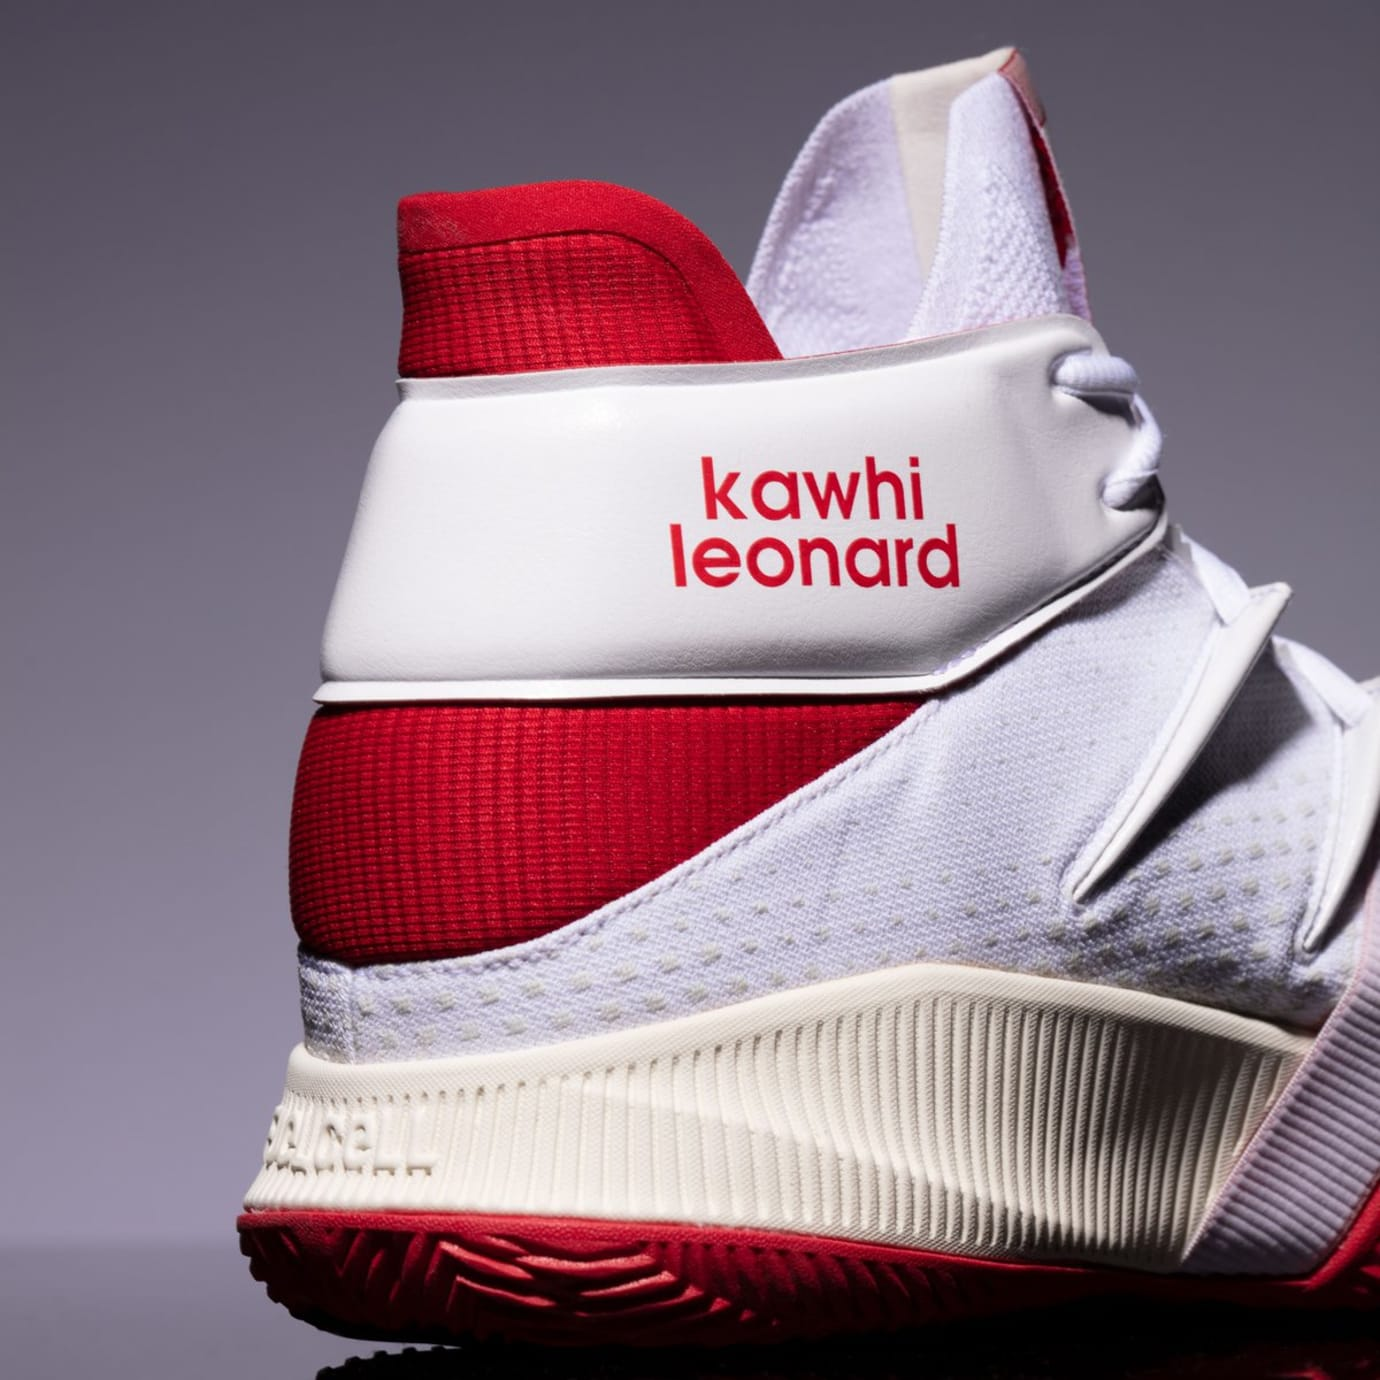 New Balance OMN1S Kawhi Leonard All-Star Game PE 'White/Red' 2